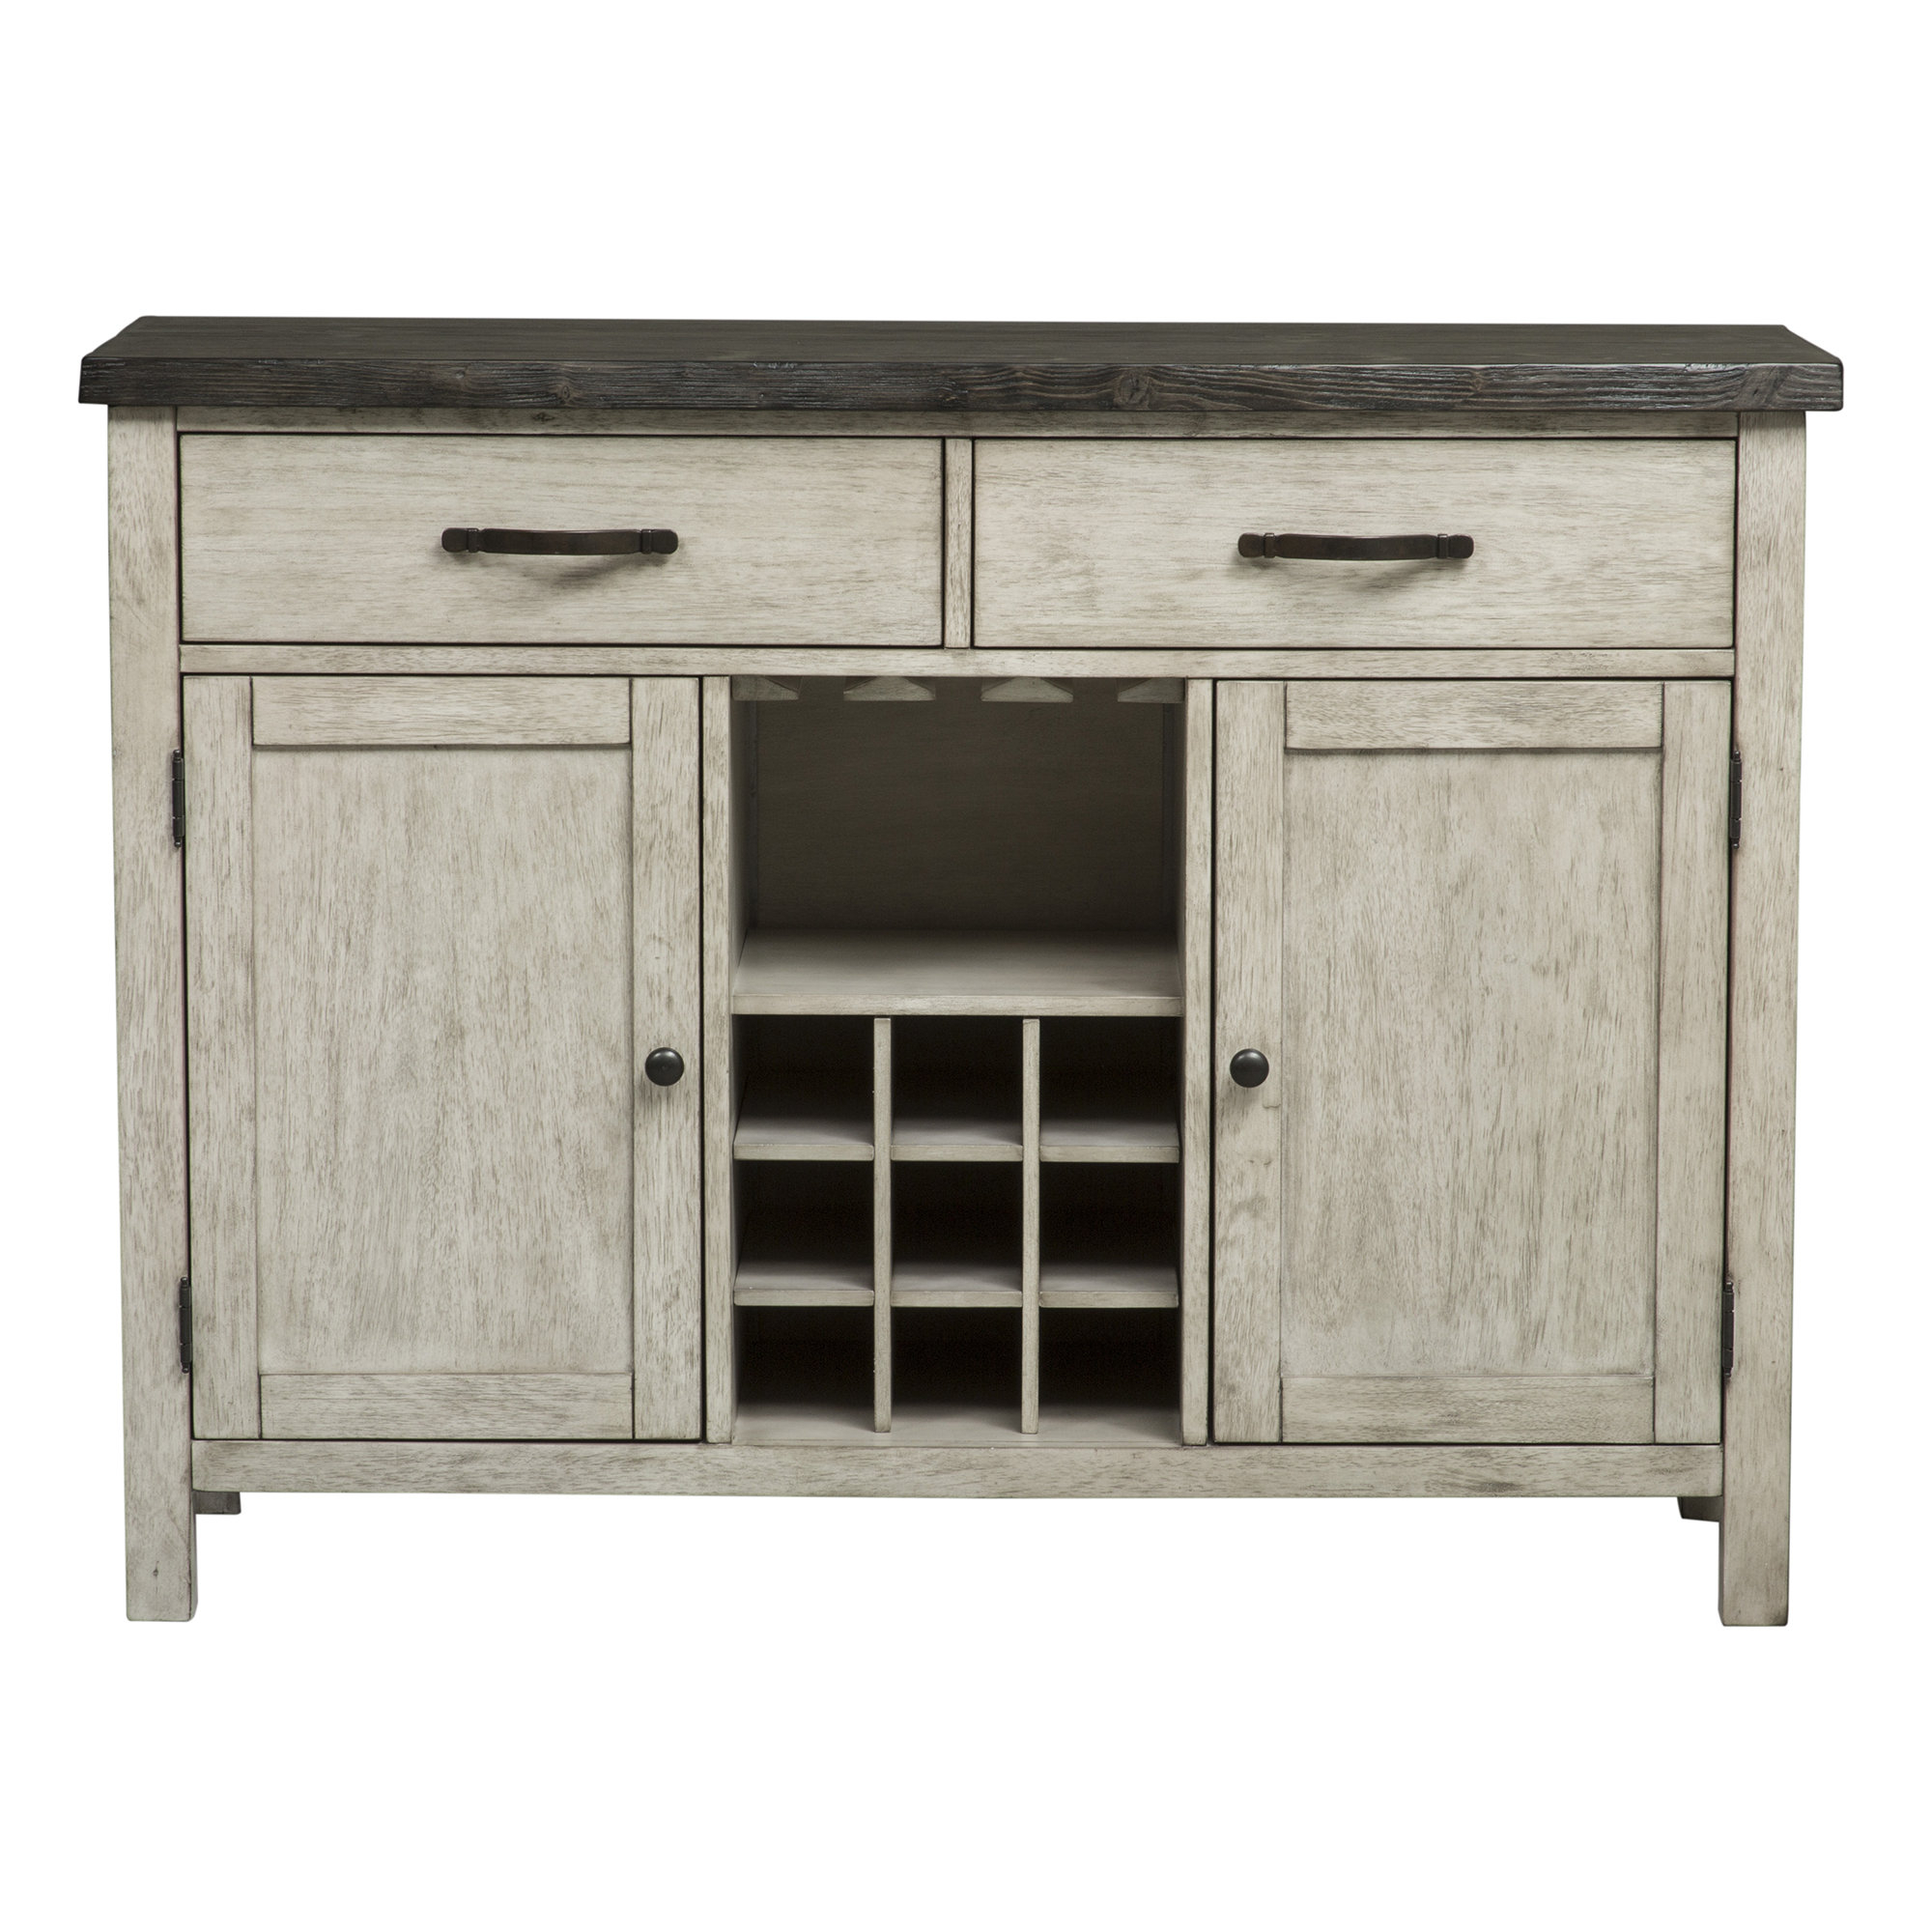 Gray Wood Sideboards & Buffets | Joss & Main For Cazenovia Charnley Sideboards (Gallery 4 of 20)